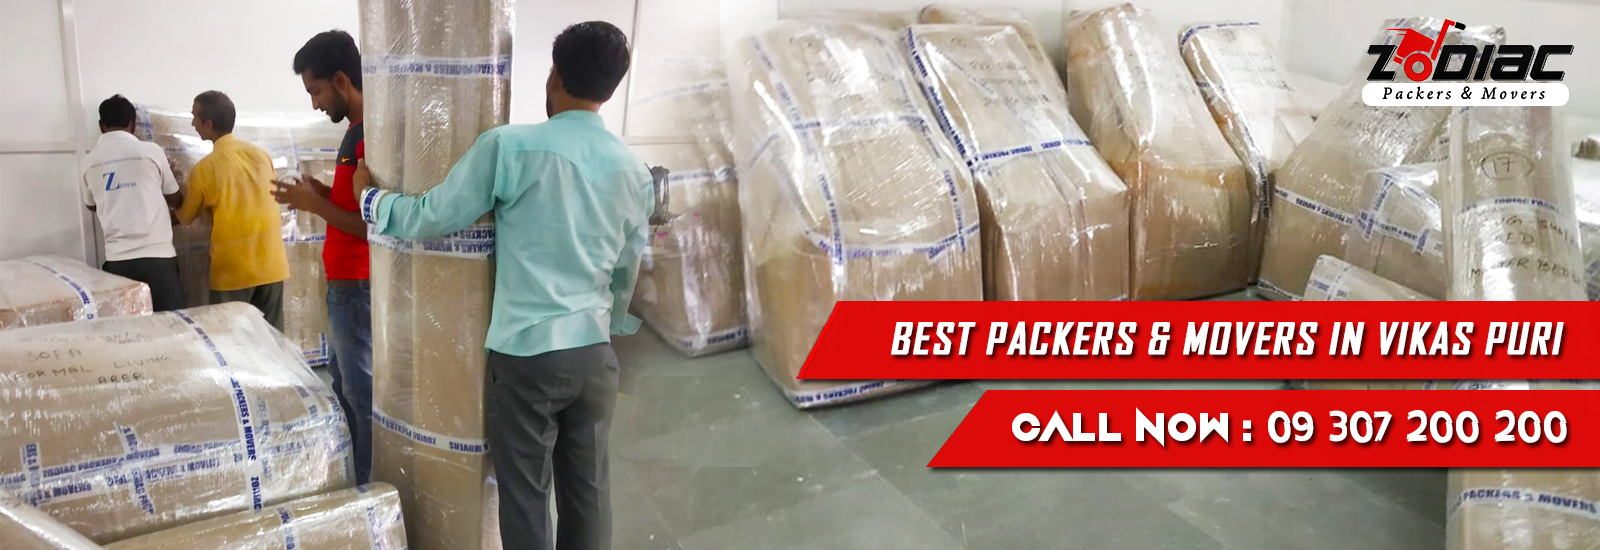 Packers and Movers in Vikas Puri